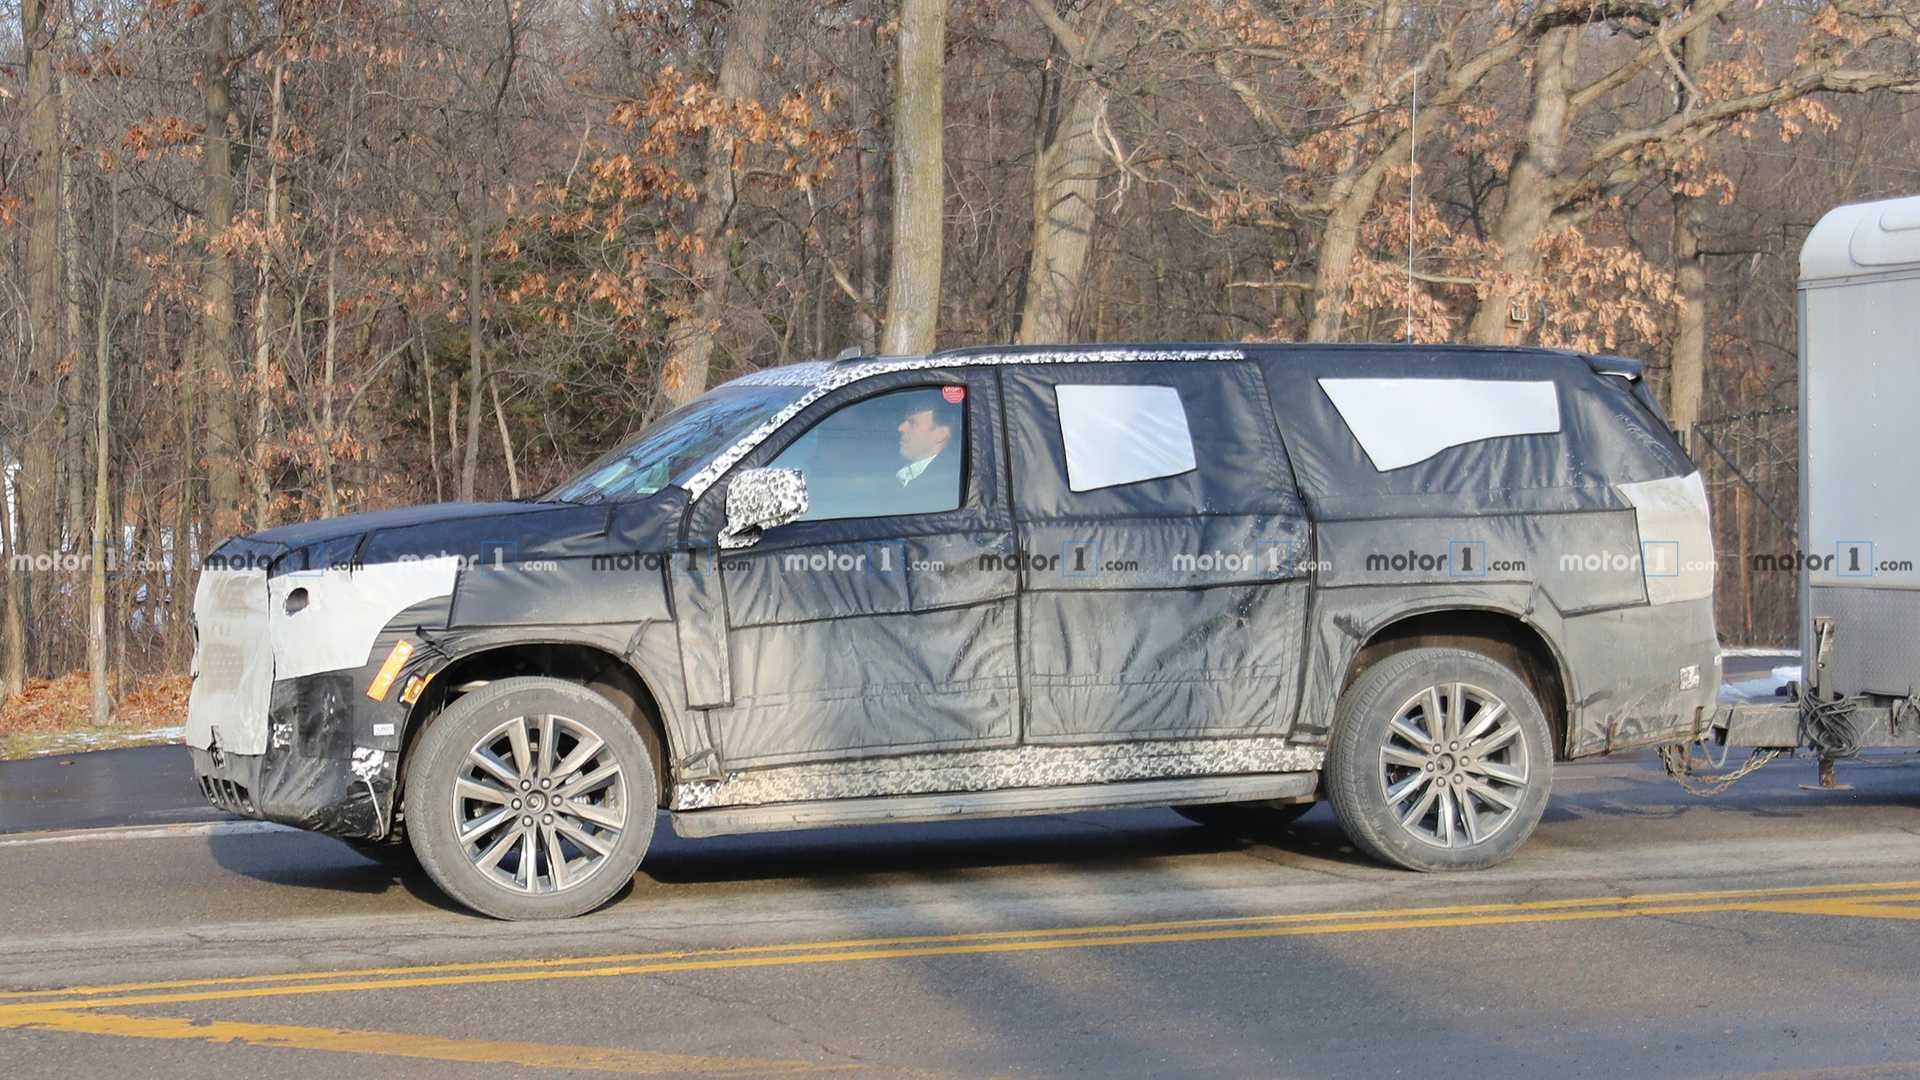 28 All New How Much Is A 2020 Cadillac Escalade Pricing